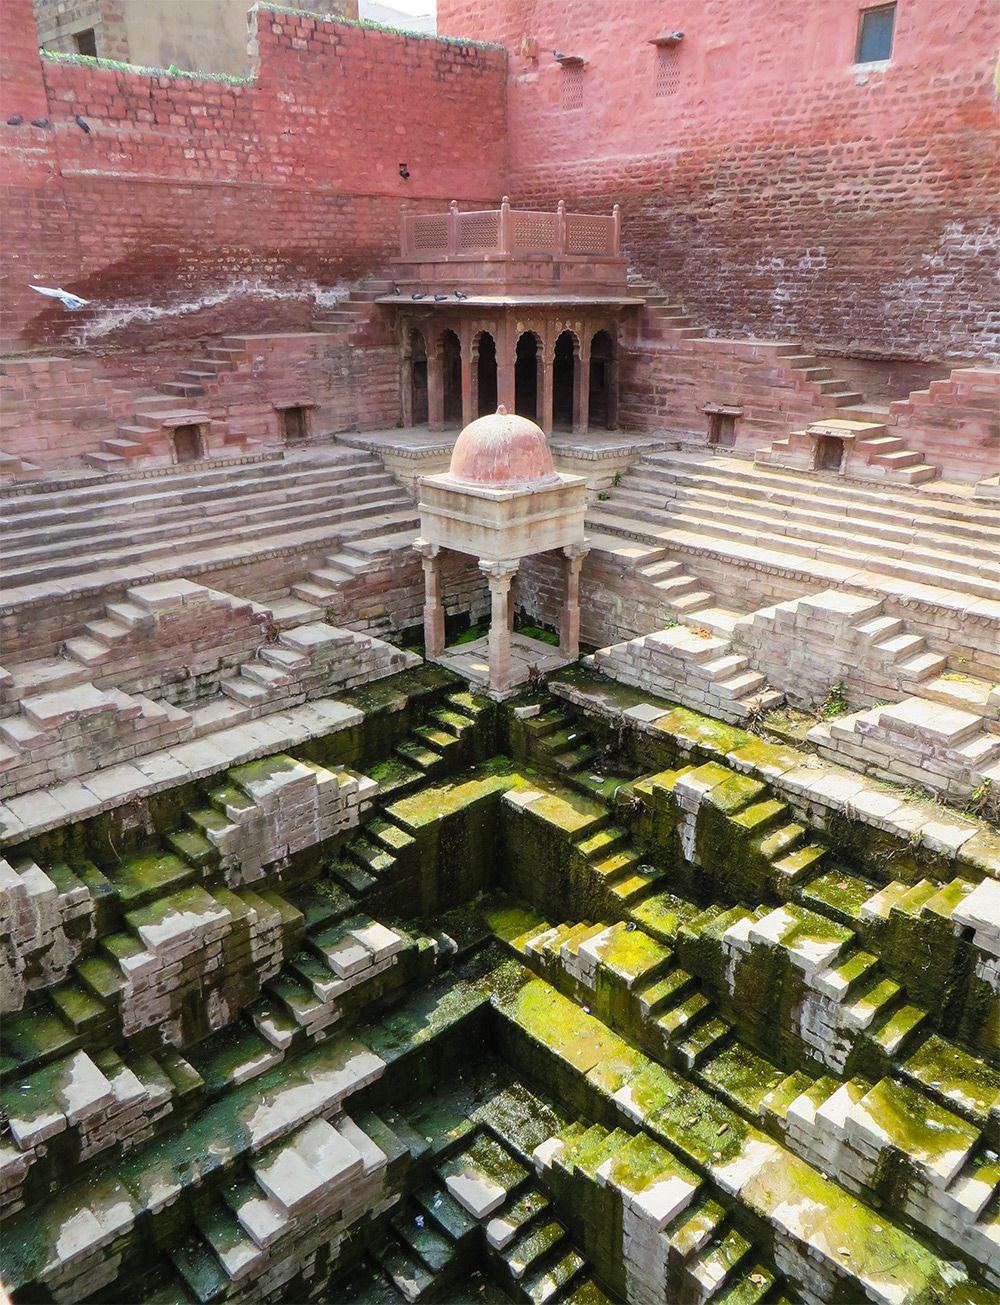 Derelict Indian Stepwells